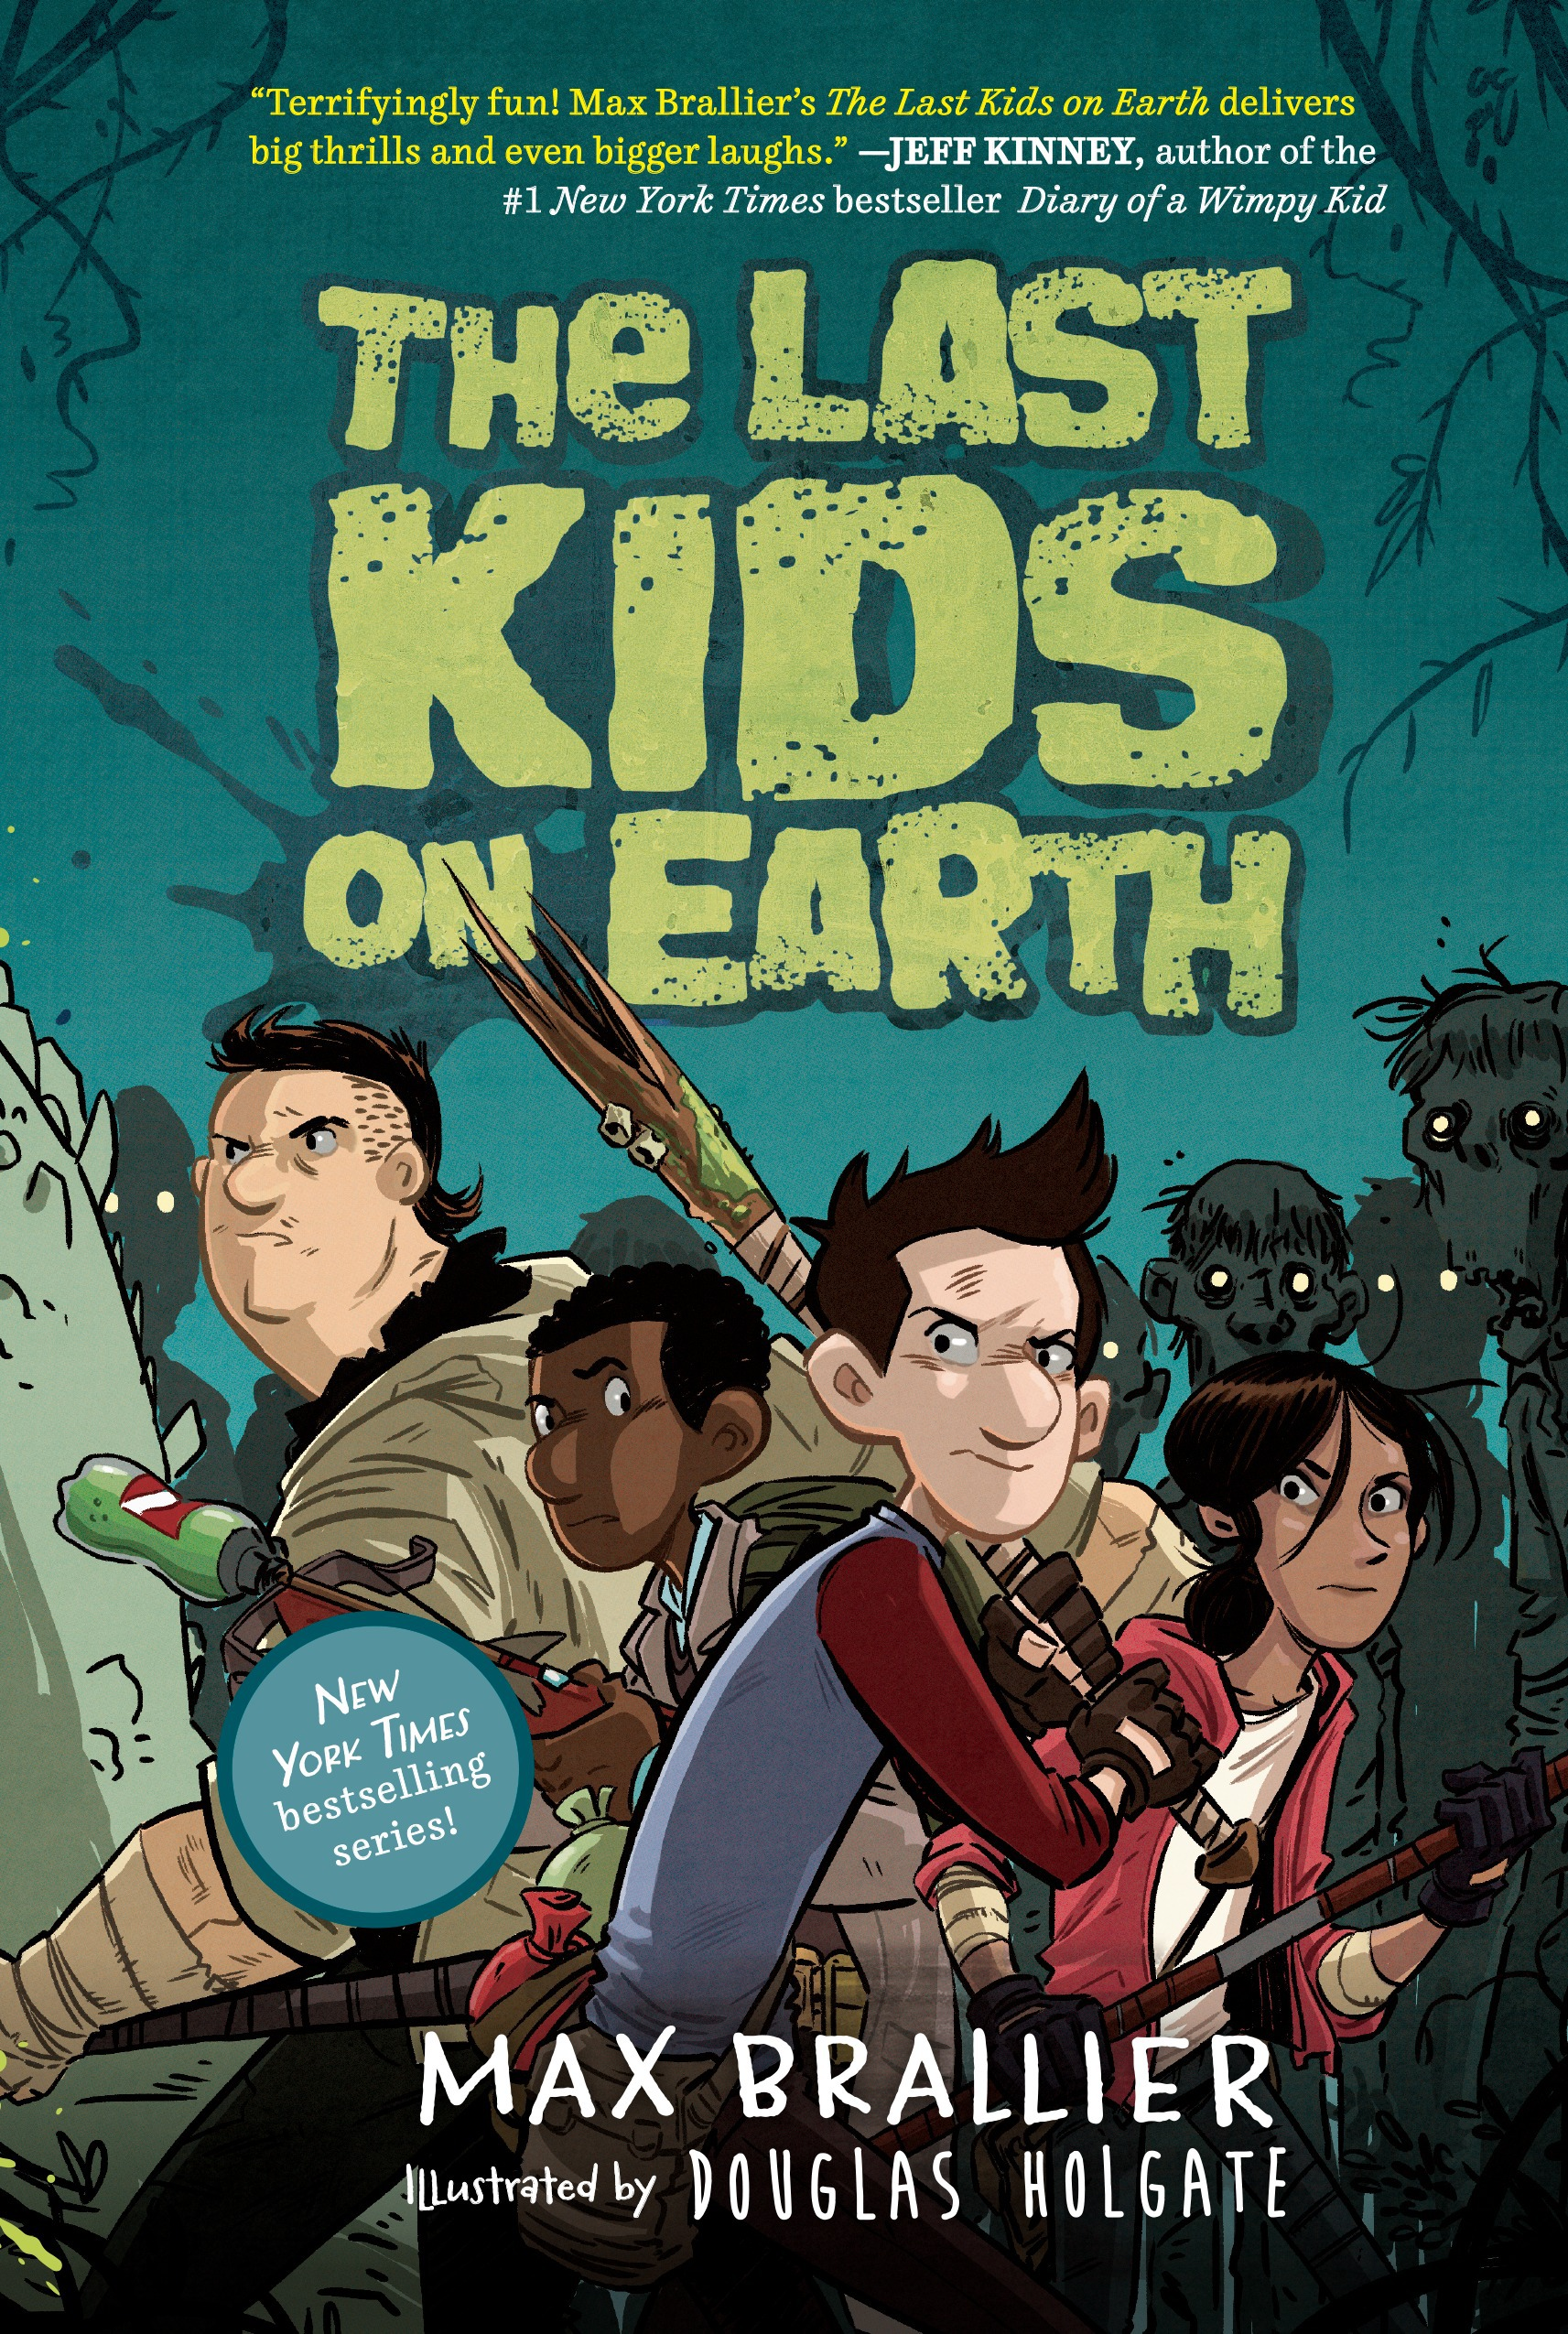 brallier-last-kids-earth.jpg